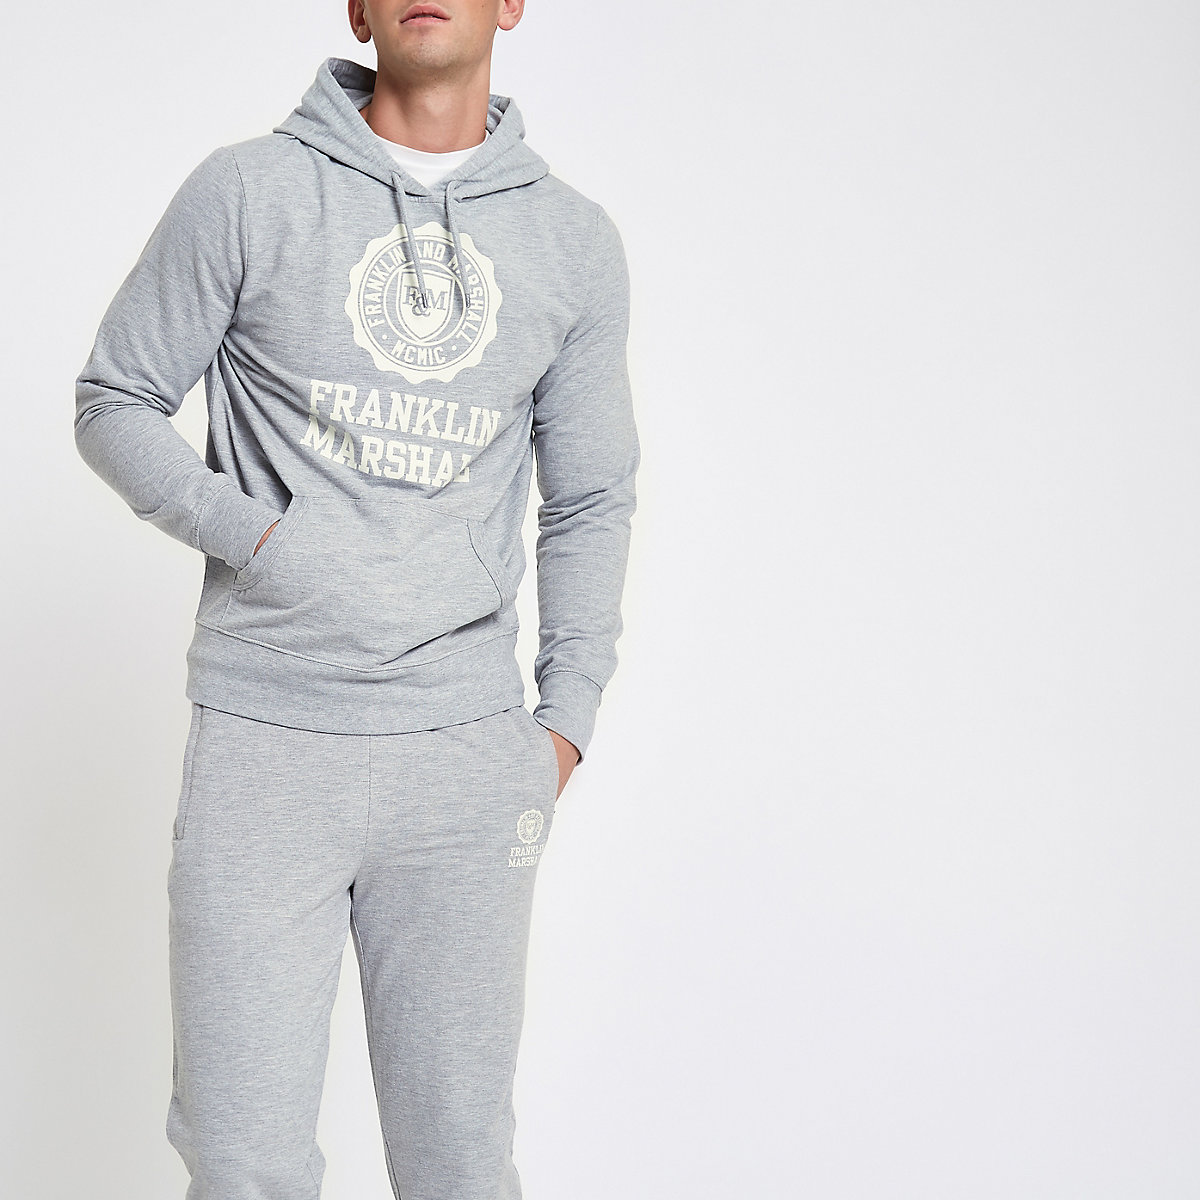 Franklin & Marshall grey tracksuit outfit